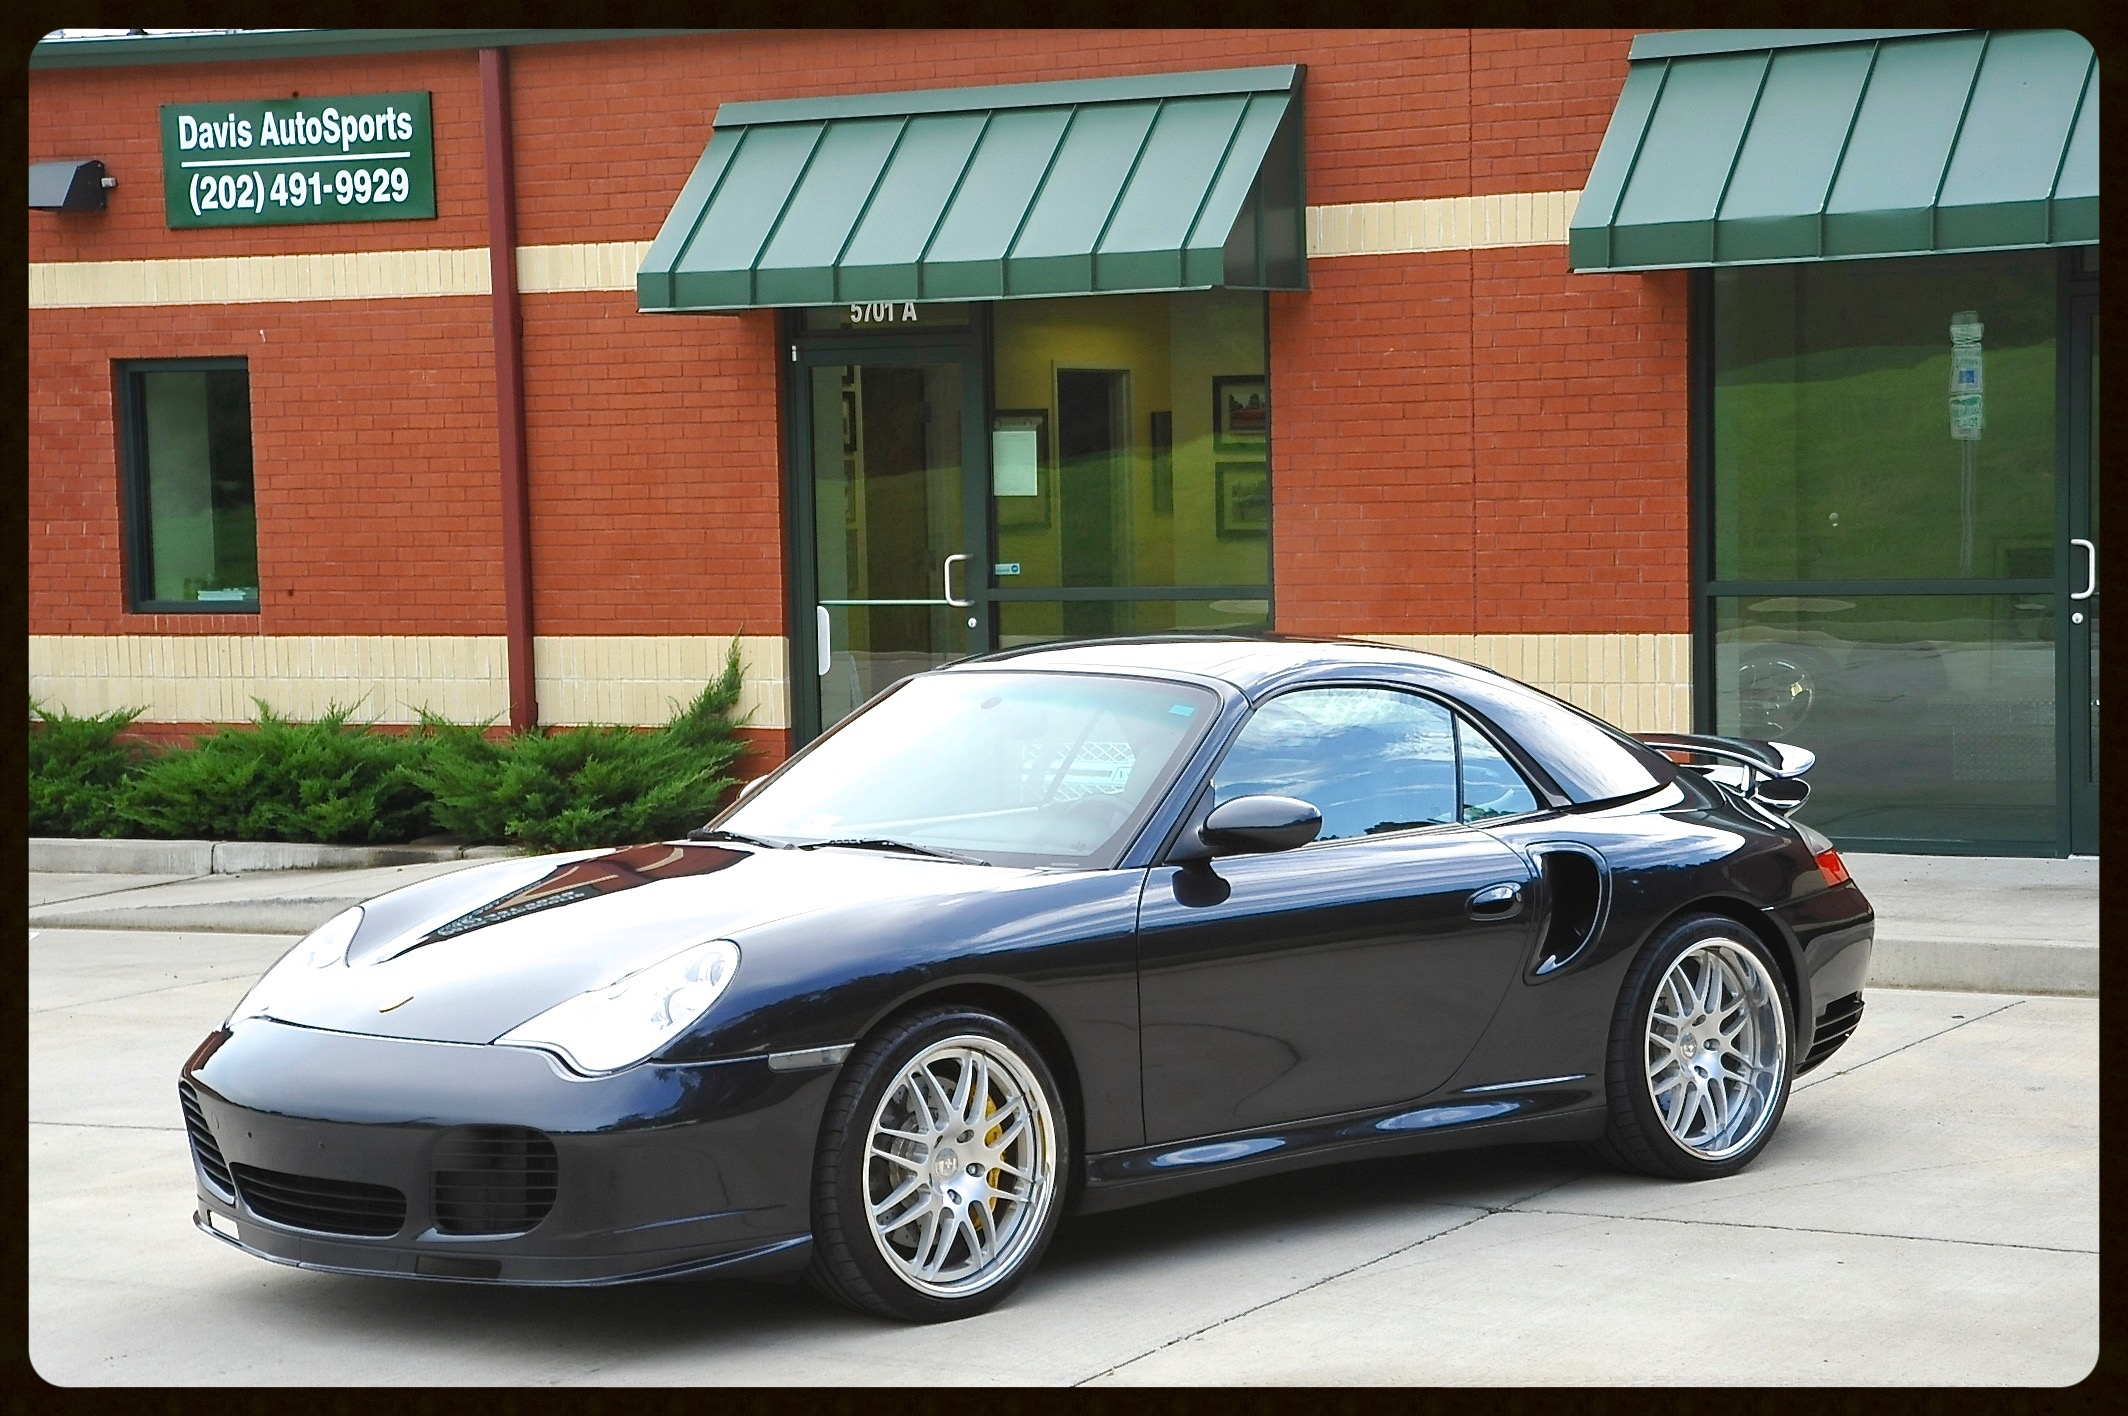 Very Rare 911 Turbo S with Factory Hardtop, Carbon Ceramic Brakes, $12,000 HRE Wheels, and Much More. Click to View More Photos